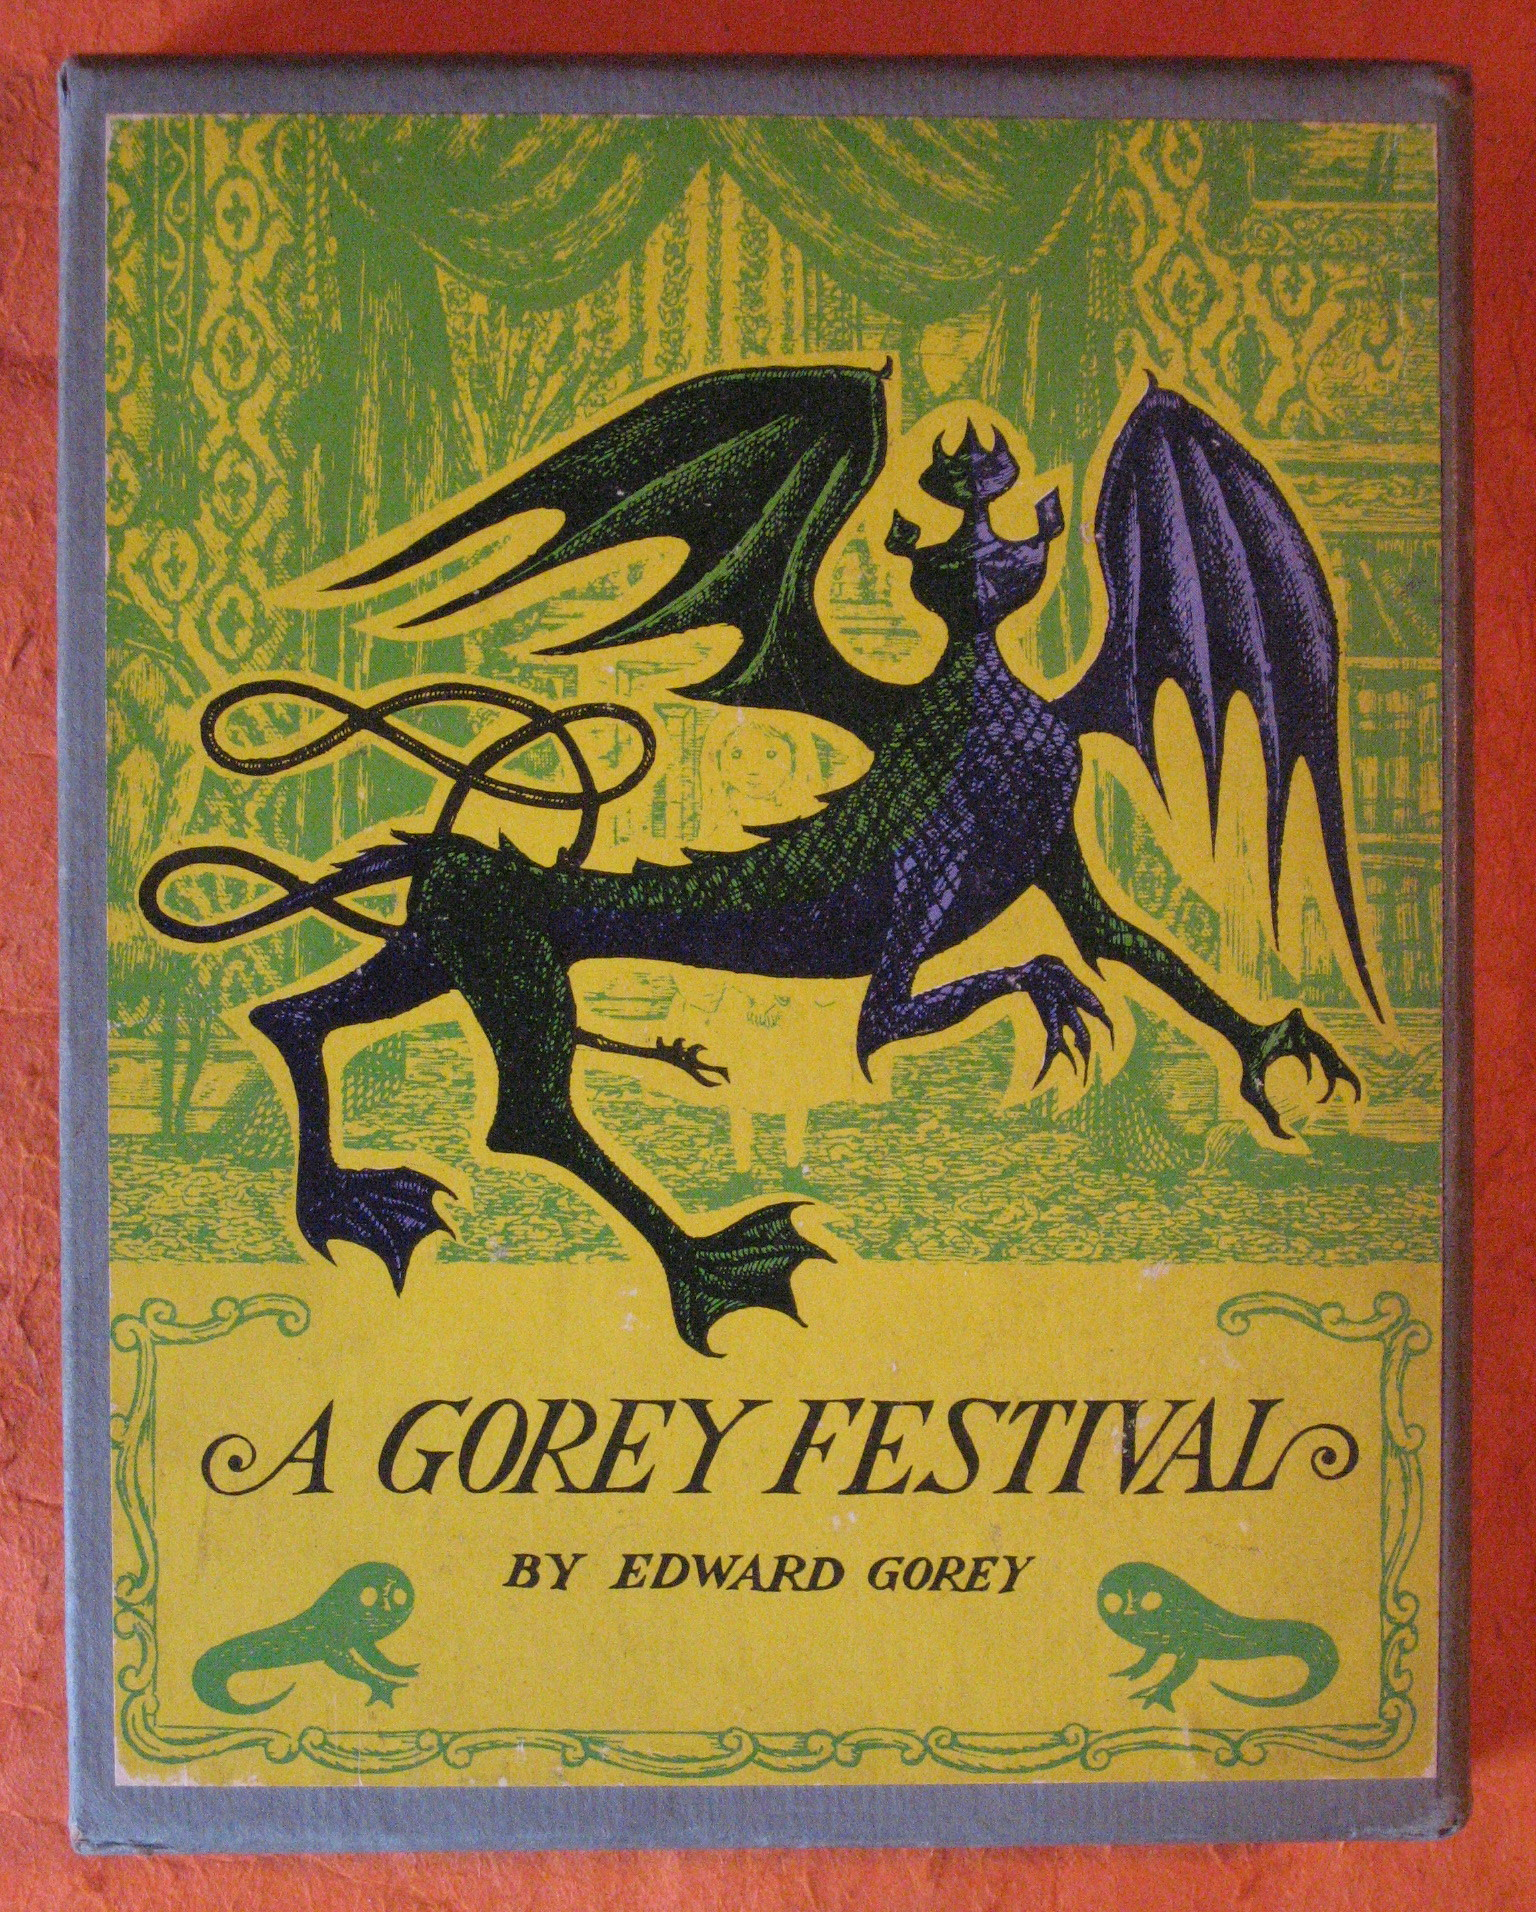 A Gorey Festival: The Hapless Child / The Sinking Spell / The Fatal Lozenge / The Curious Sofa ( Four Volume Set in Slipcase), Gorey, Edward